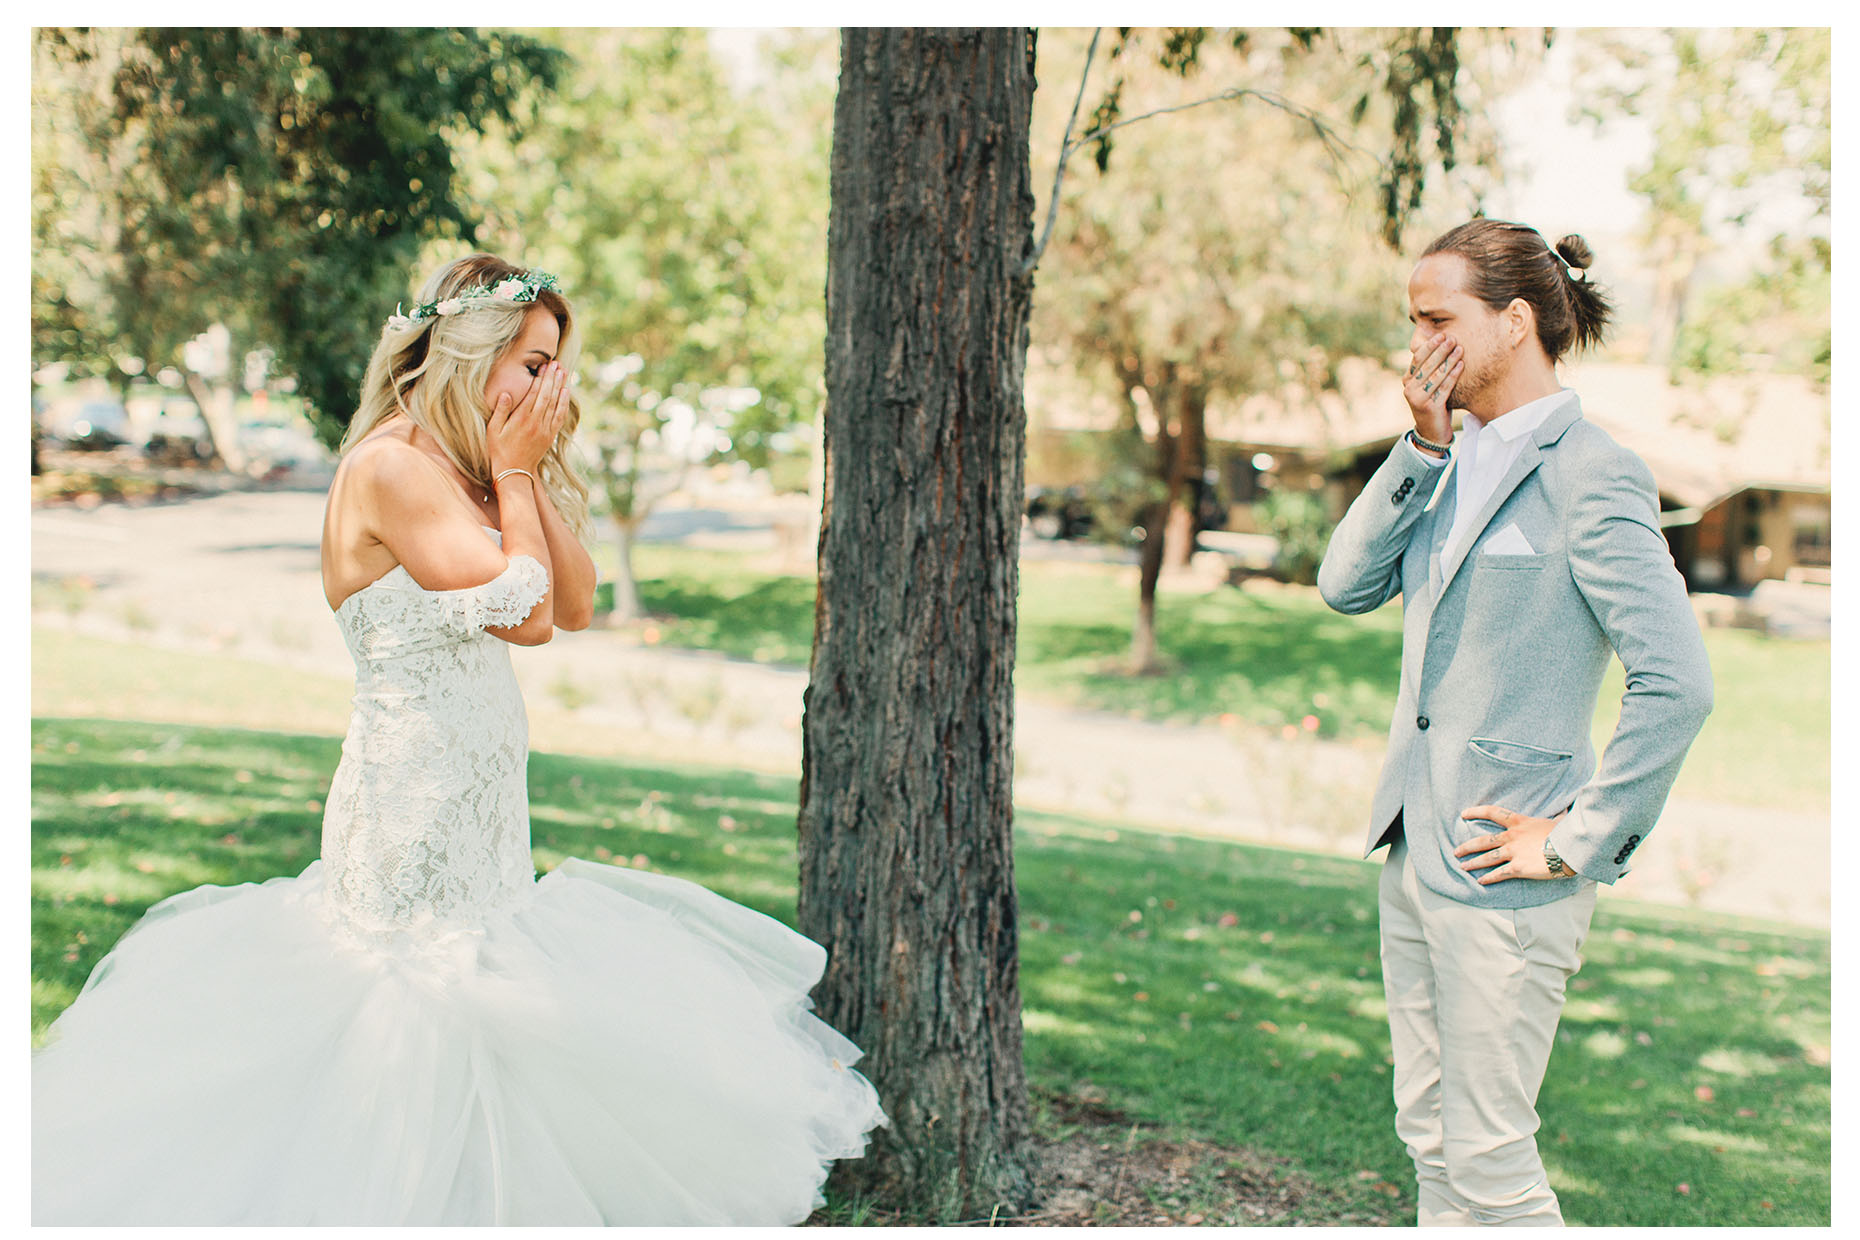 TemeculamostcreativeweddingphotographertopratedyelpStoneweddinghousetemeculacreekinn